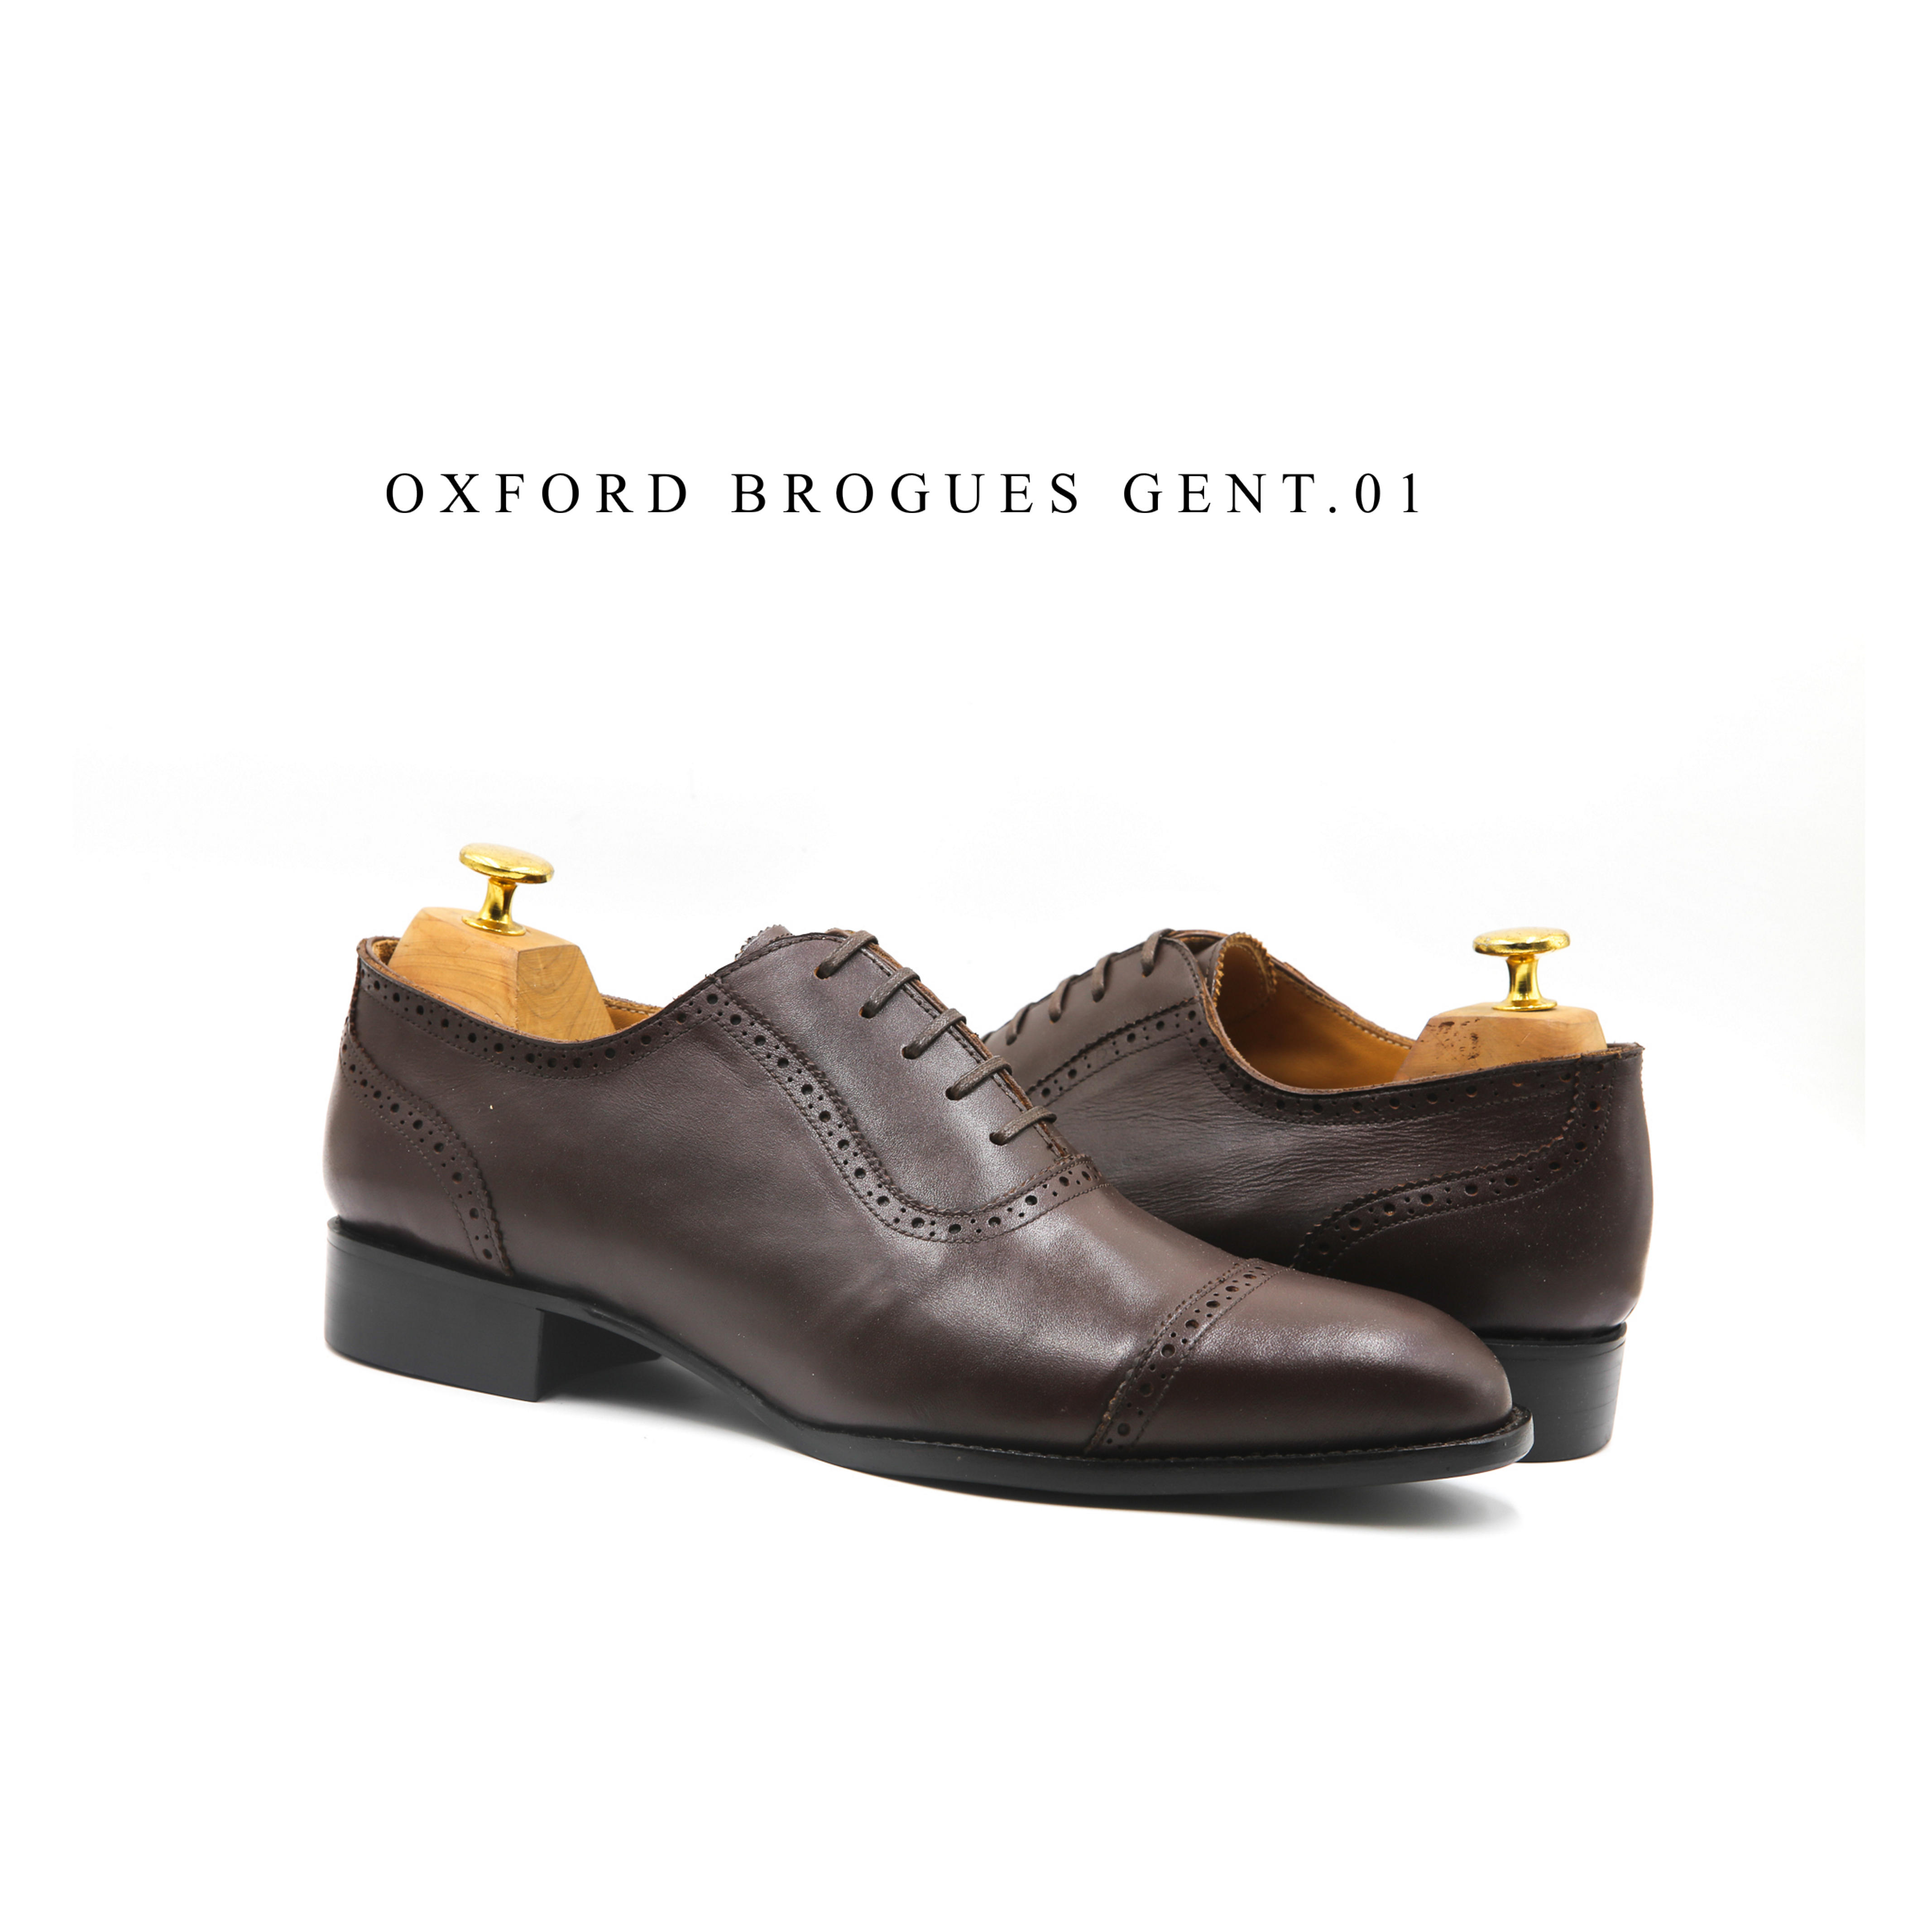 OXFORD BROGUES GENT.01